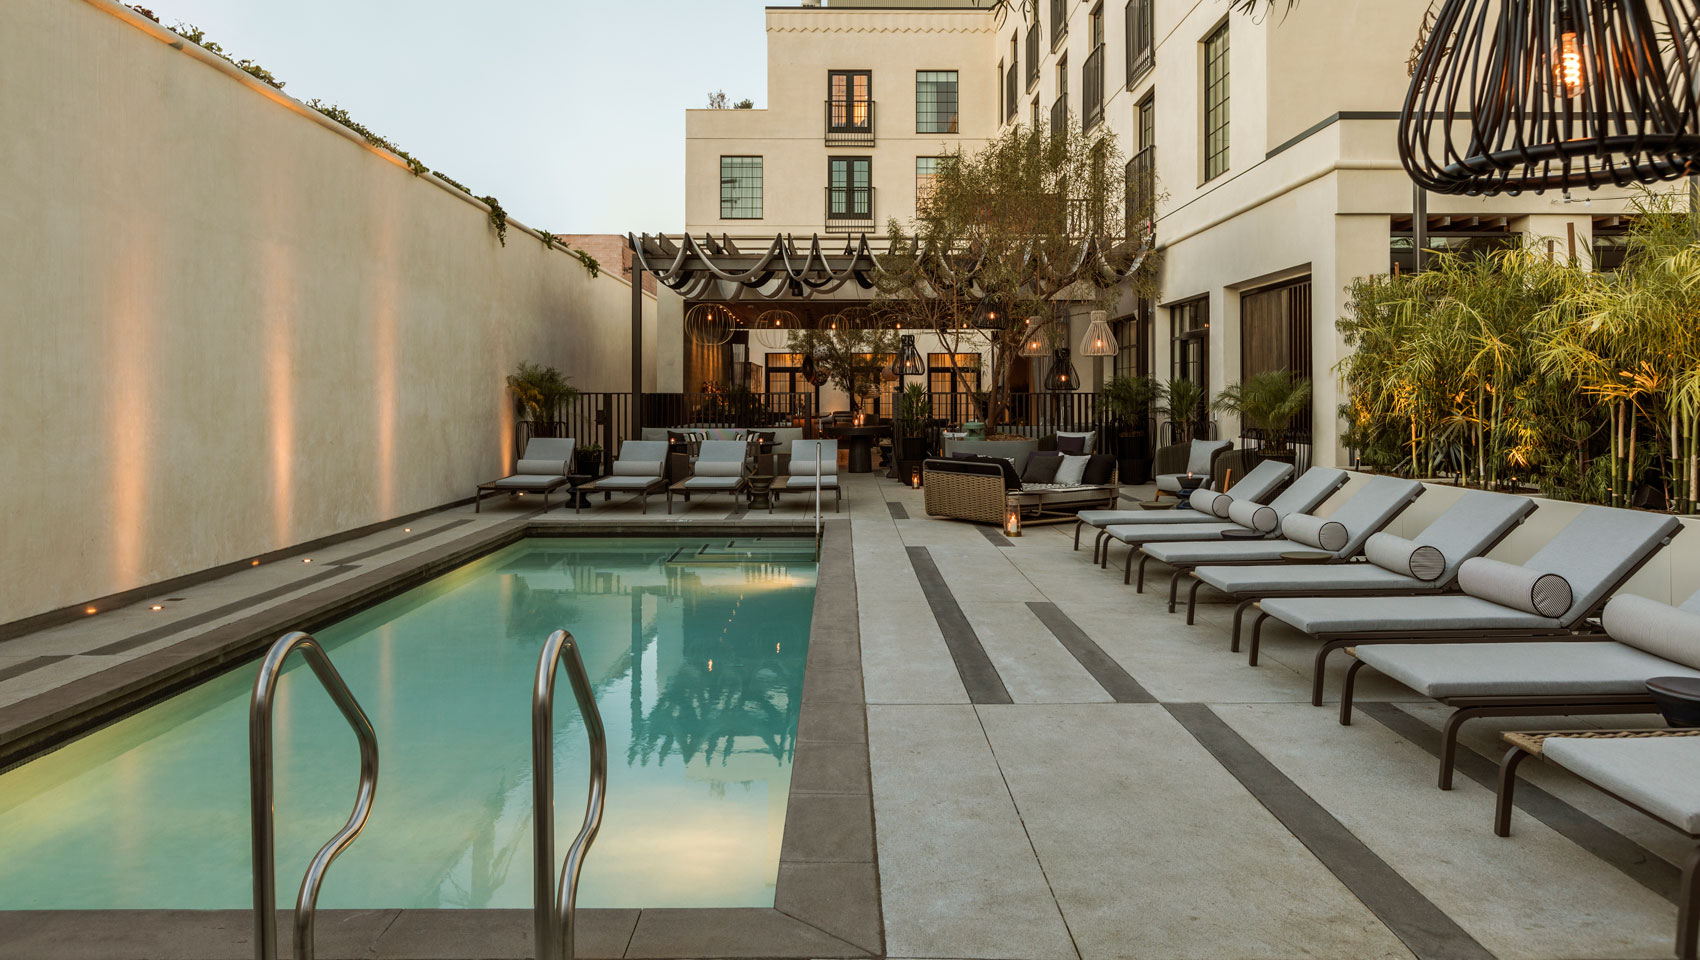 PAX - Get to know West Hollywood, the